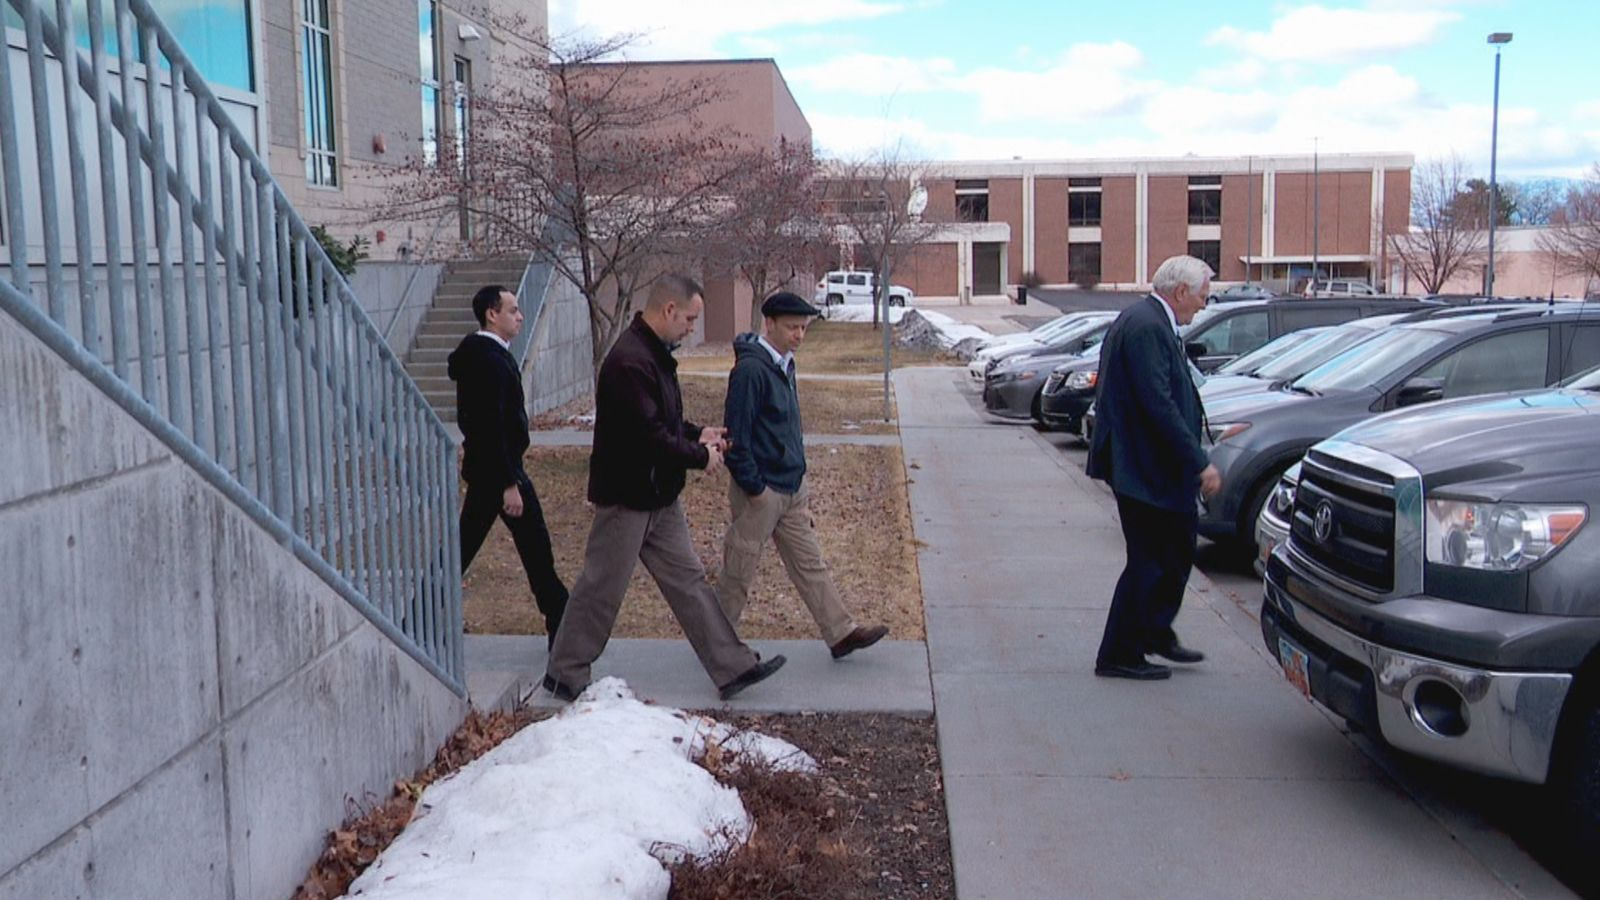 CJ Haynie's father Colin Haynie was seen leaving district court in Tooele County on Monday, Jan. 27, 2020 after his son's first court hearing. CJ Haynie is accused of the murders of his mother and three younger siblings, as well as the attempted murder of his father. (Jeremy Castellano / KUTV)<p></p>